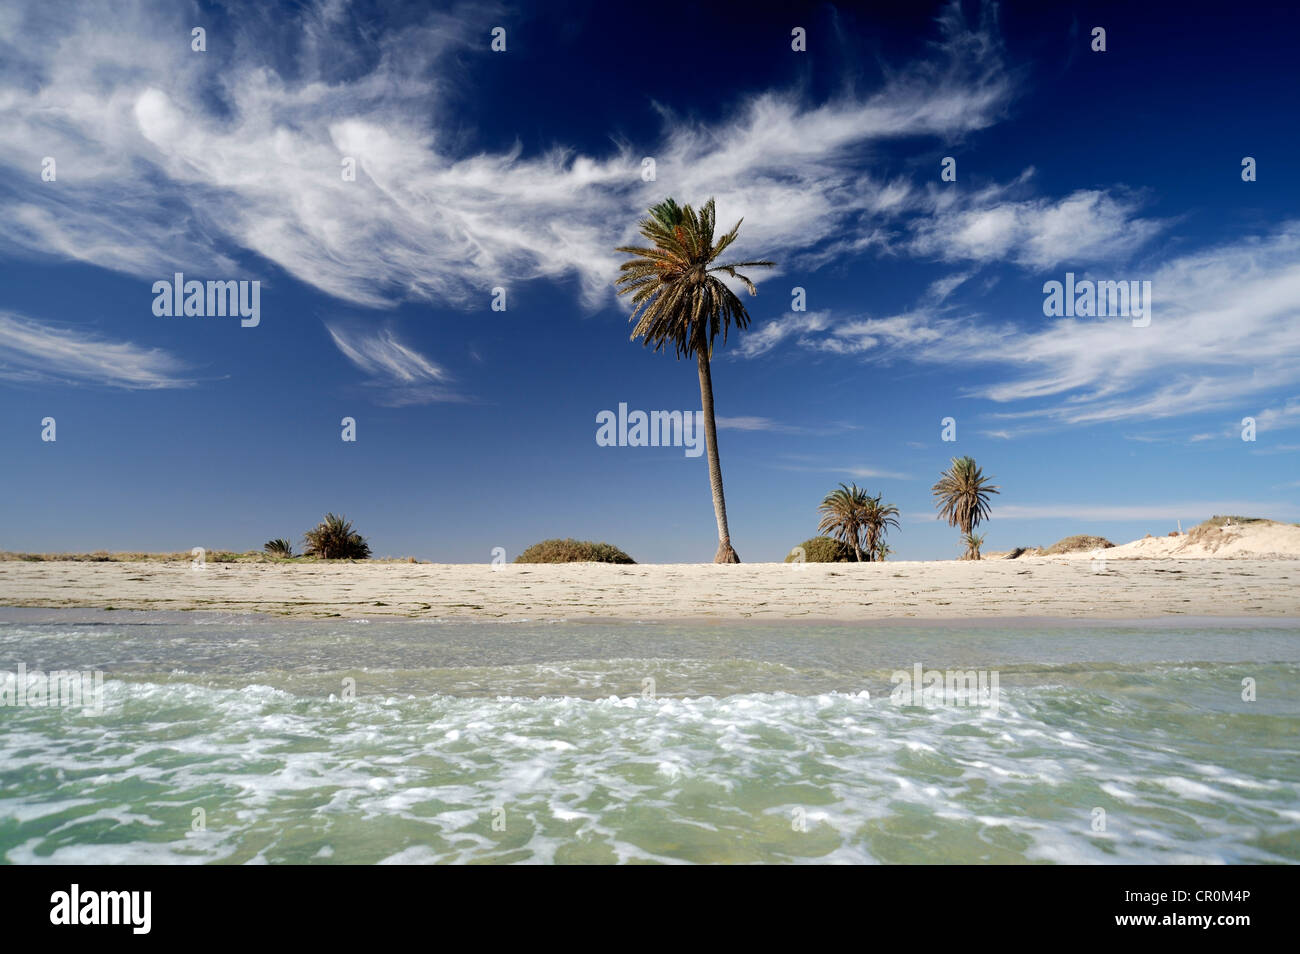 Palms on the beach, Djerba island, Tunisia, Maghreb, North Africa, Africa - Stock Image